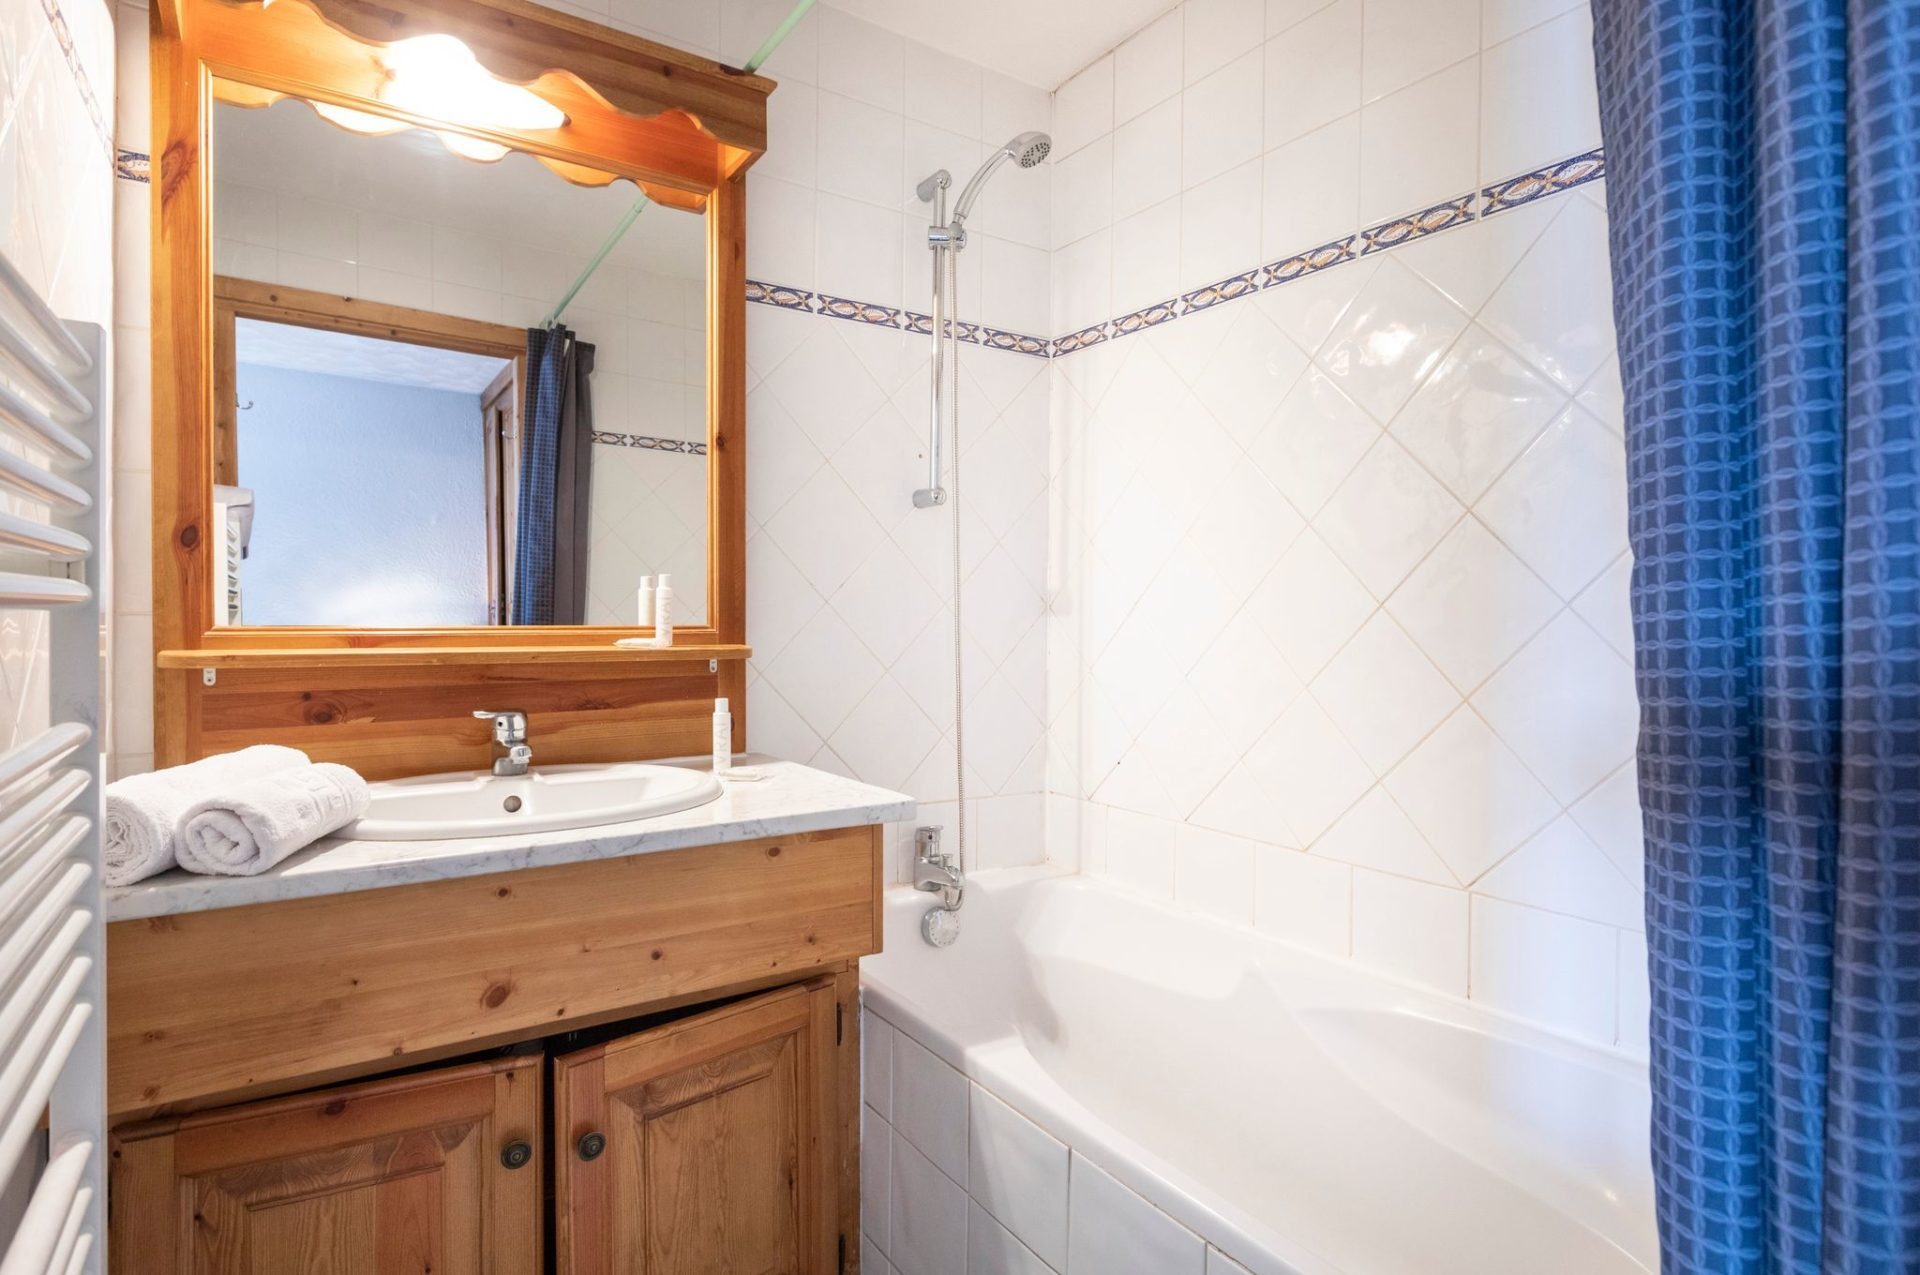 An image of the bathroom in an apartment in Chalet des Neiges Residence Hermine